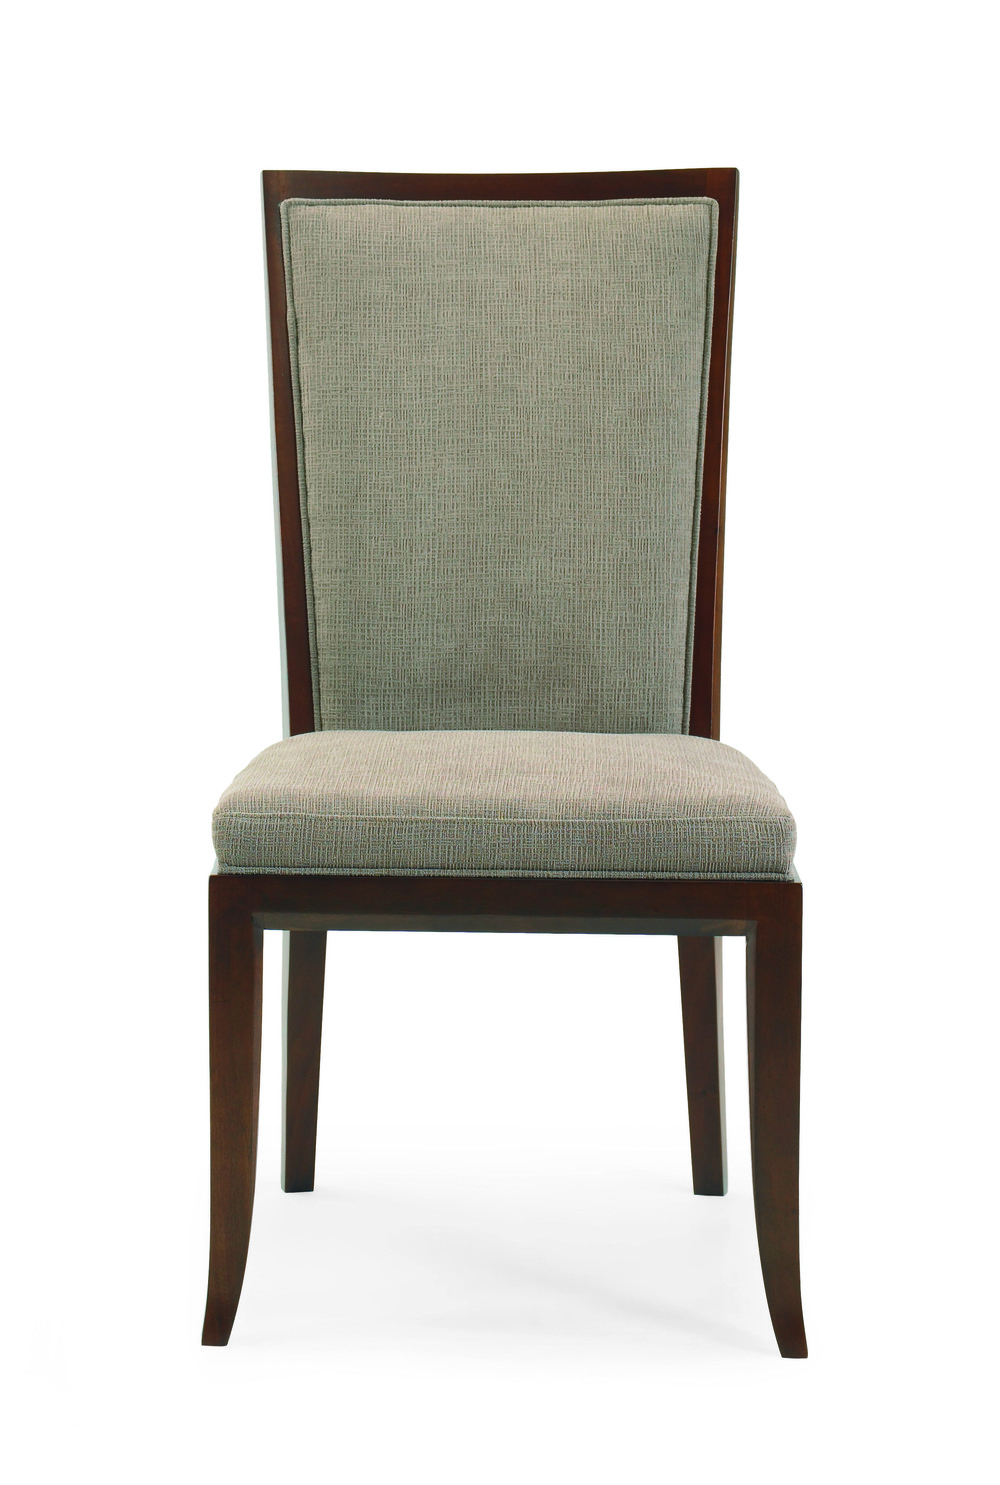 Century Furniture - Paragon Club Luna Park Side Chair